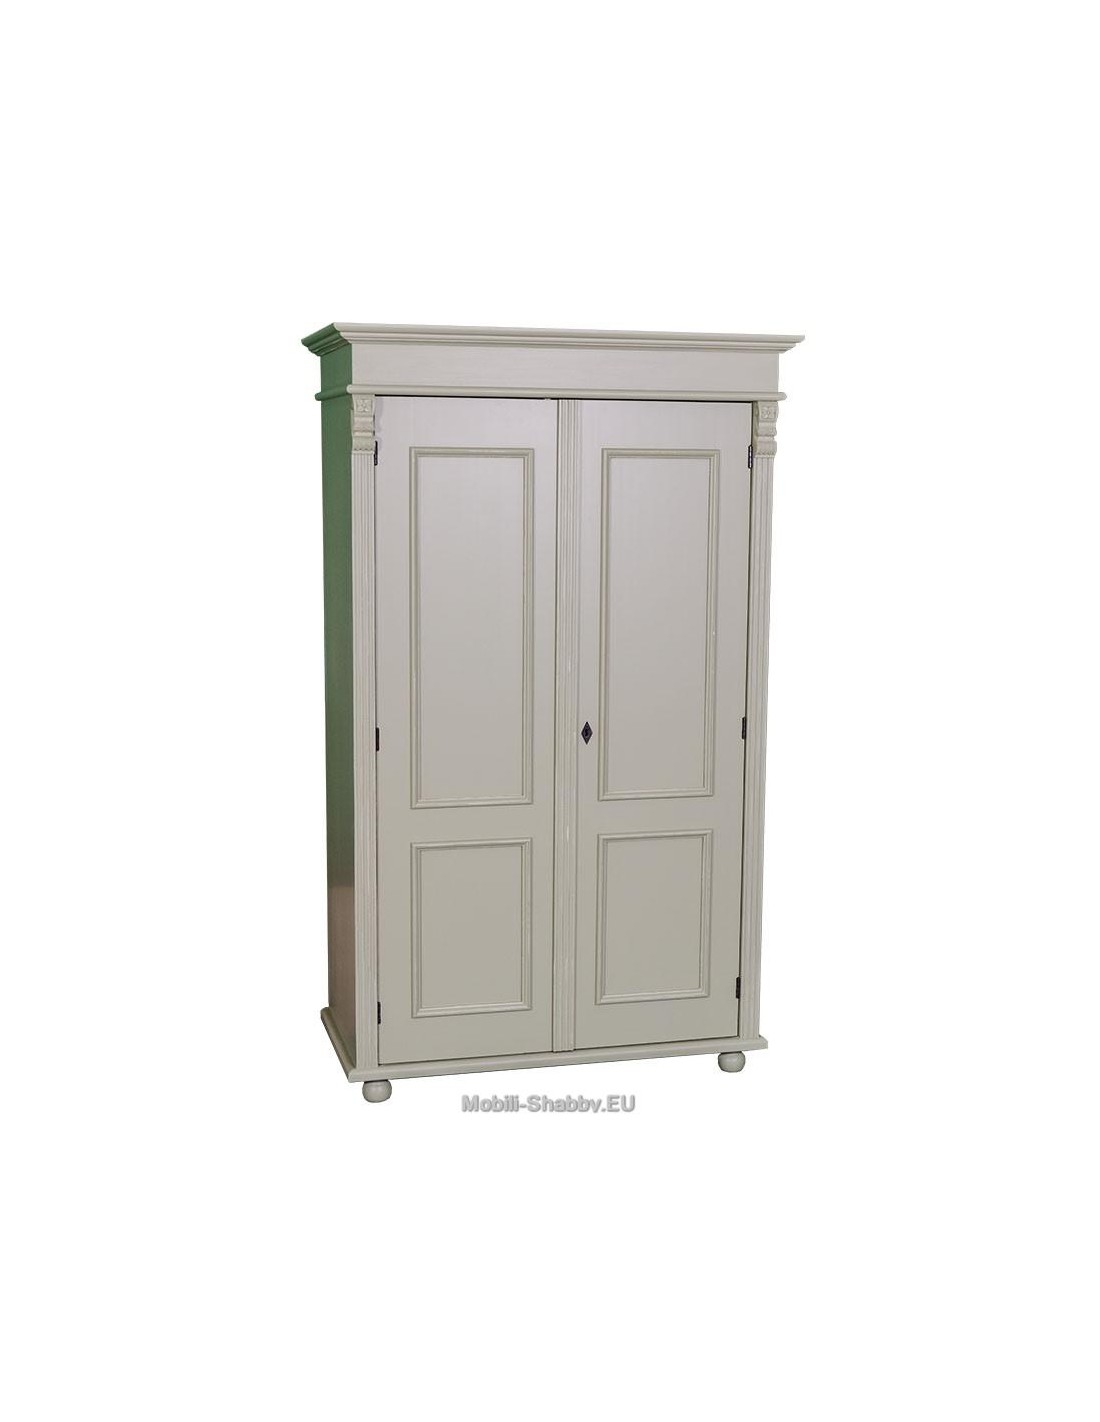 https://www.orissa.it/store/973-thickbox_default/armadio-due-ante-shabby-109cm.jpg